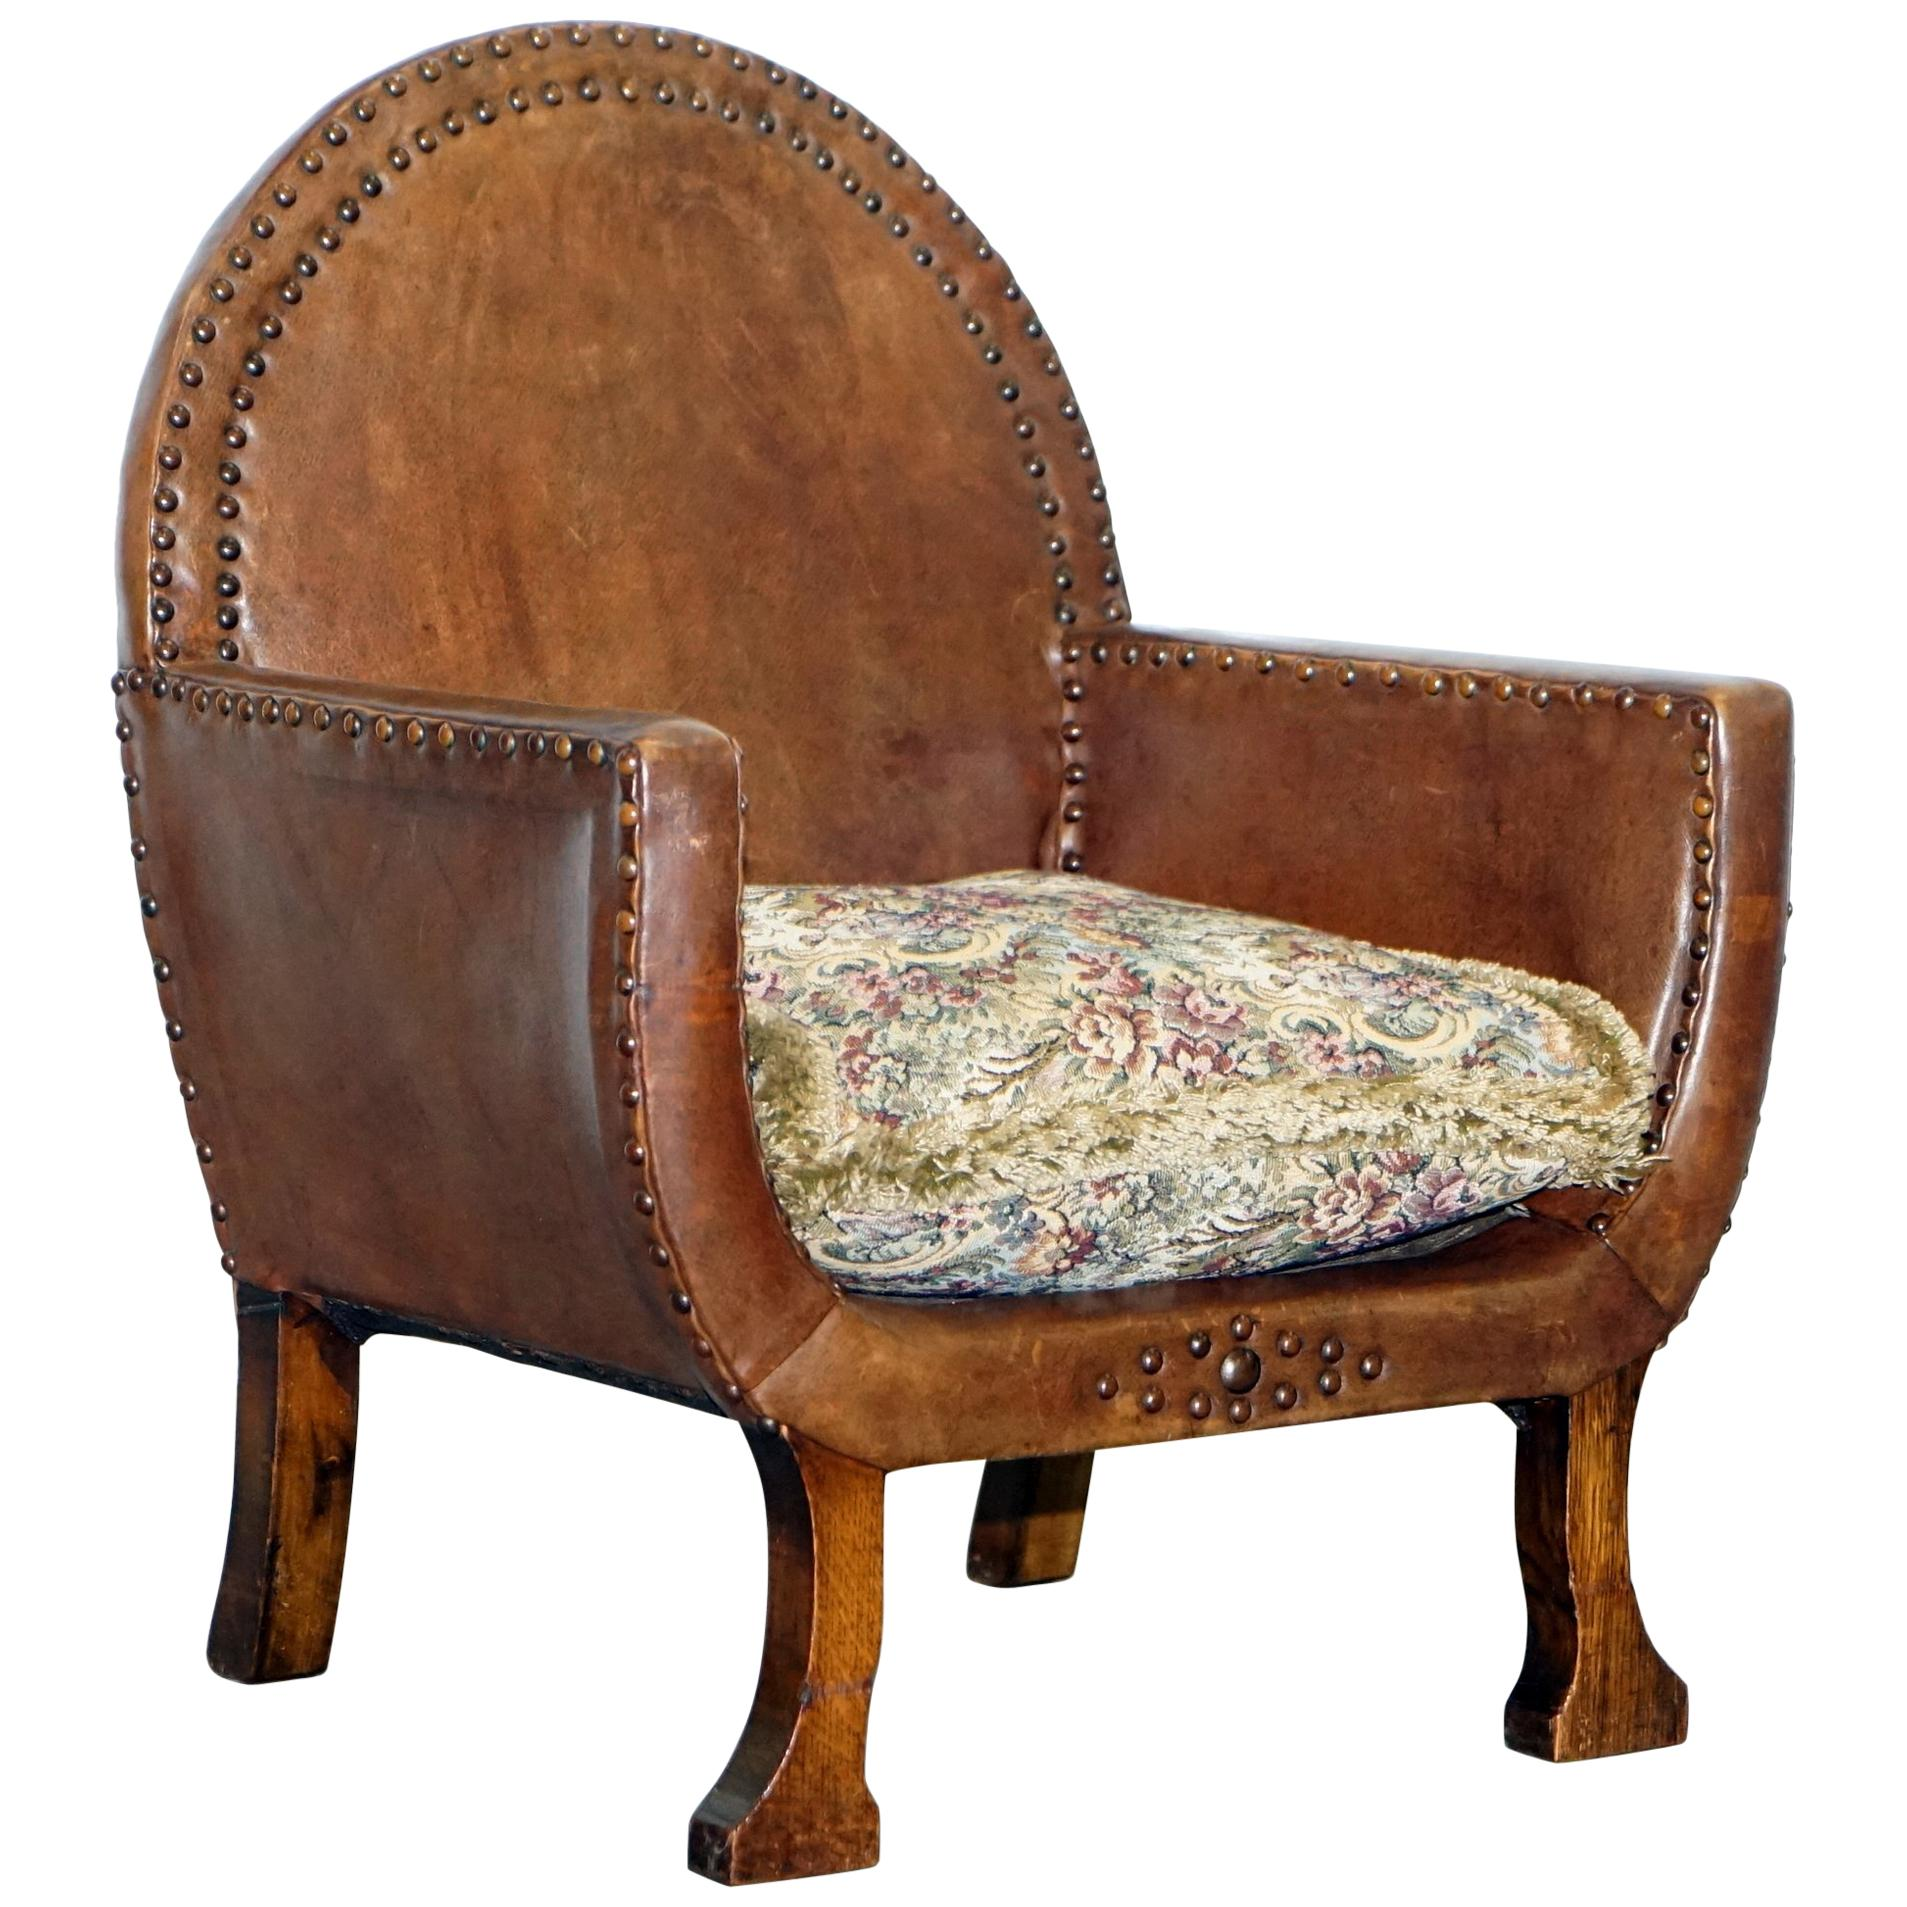 Small Club Chair Small Original Edwardian Leather And Oak Children S Club Armchair Hand Studded